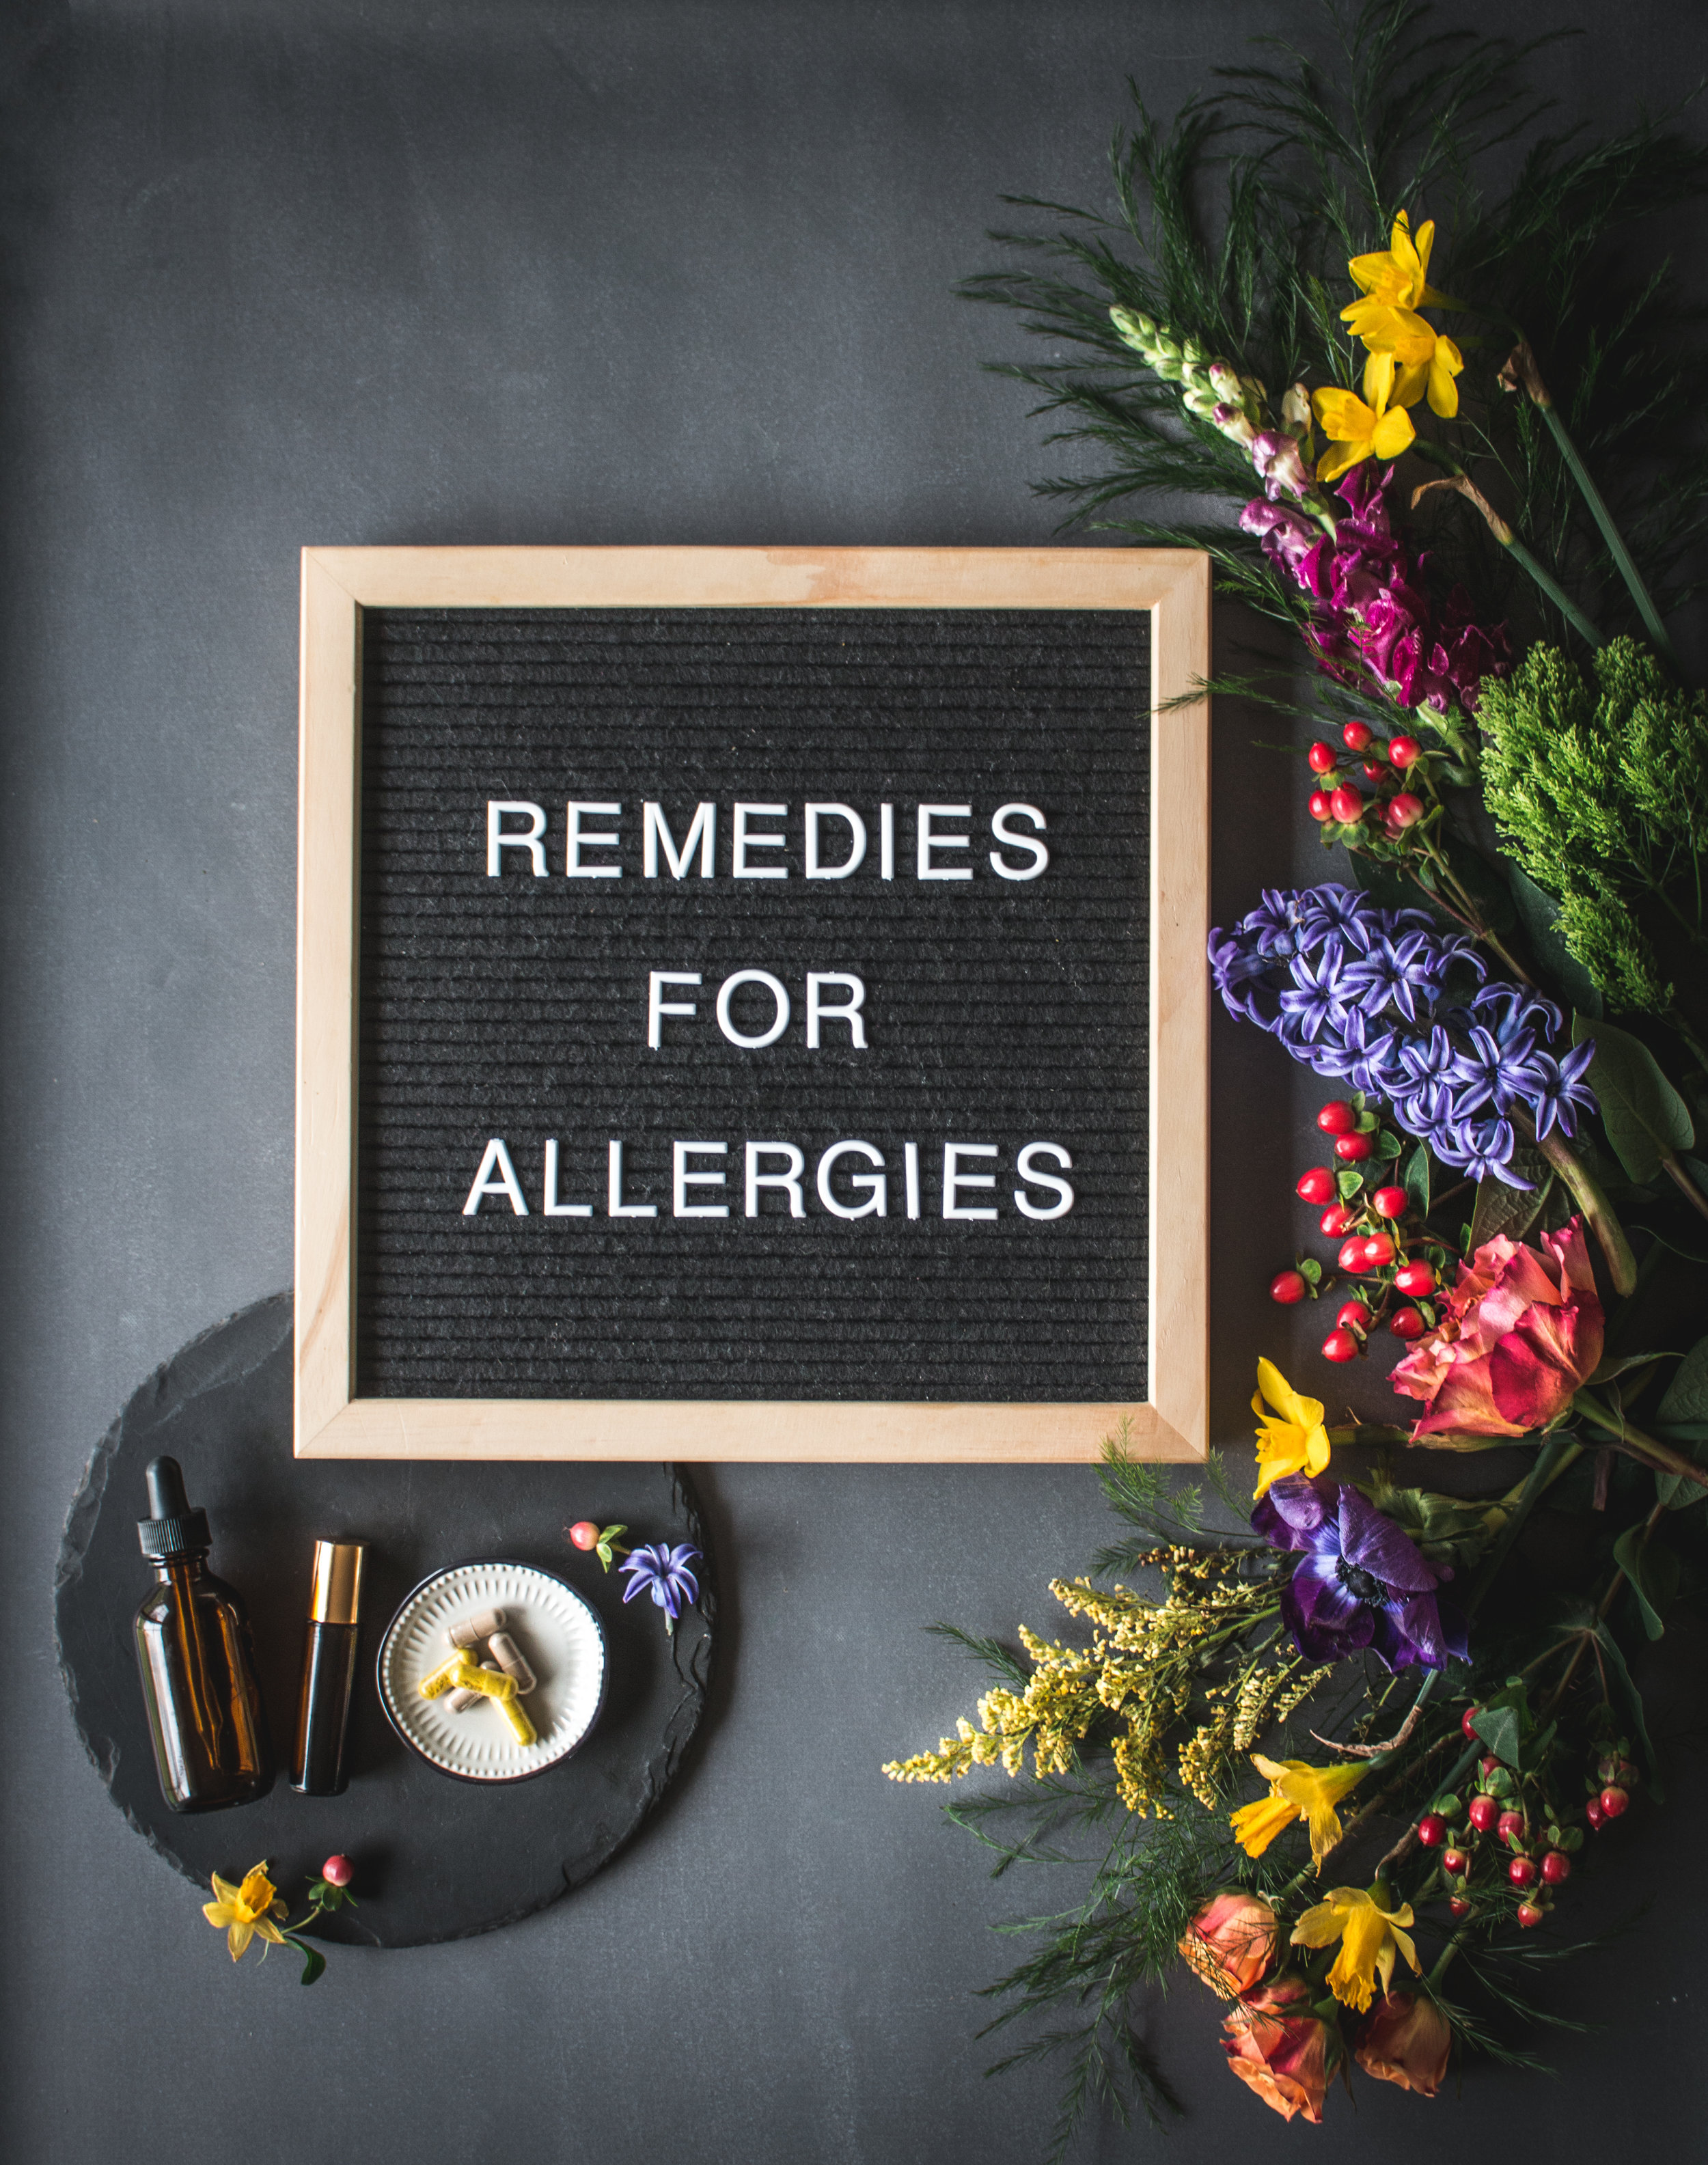 remedies for allergies (1 of 1).jpg